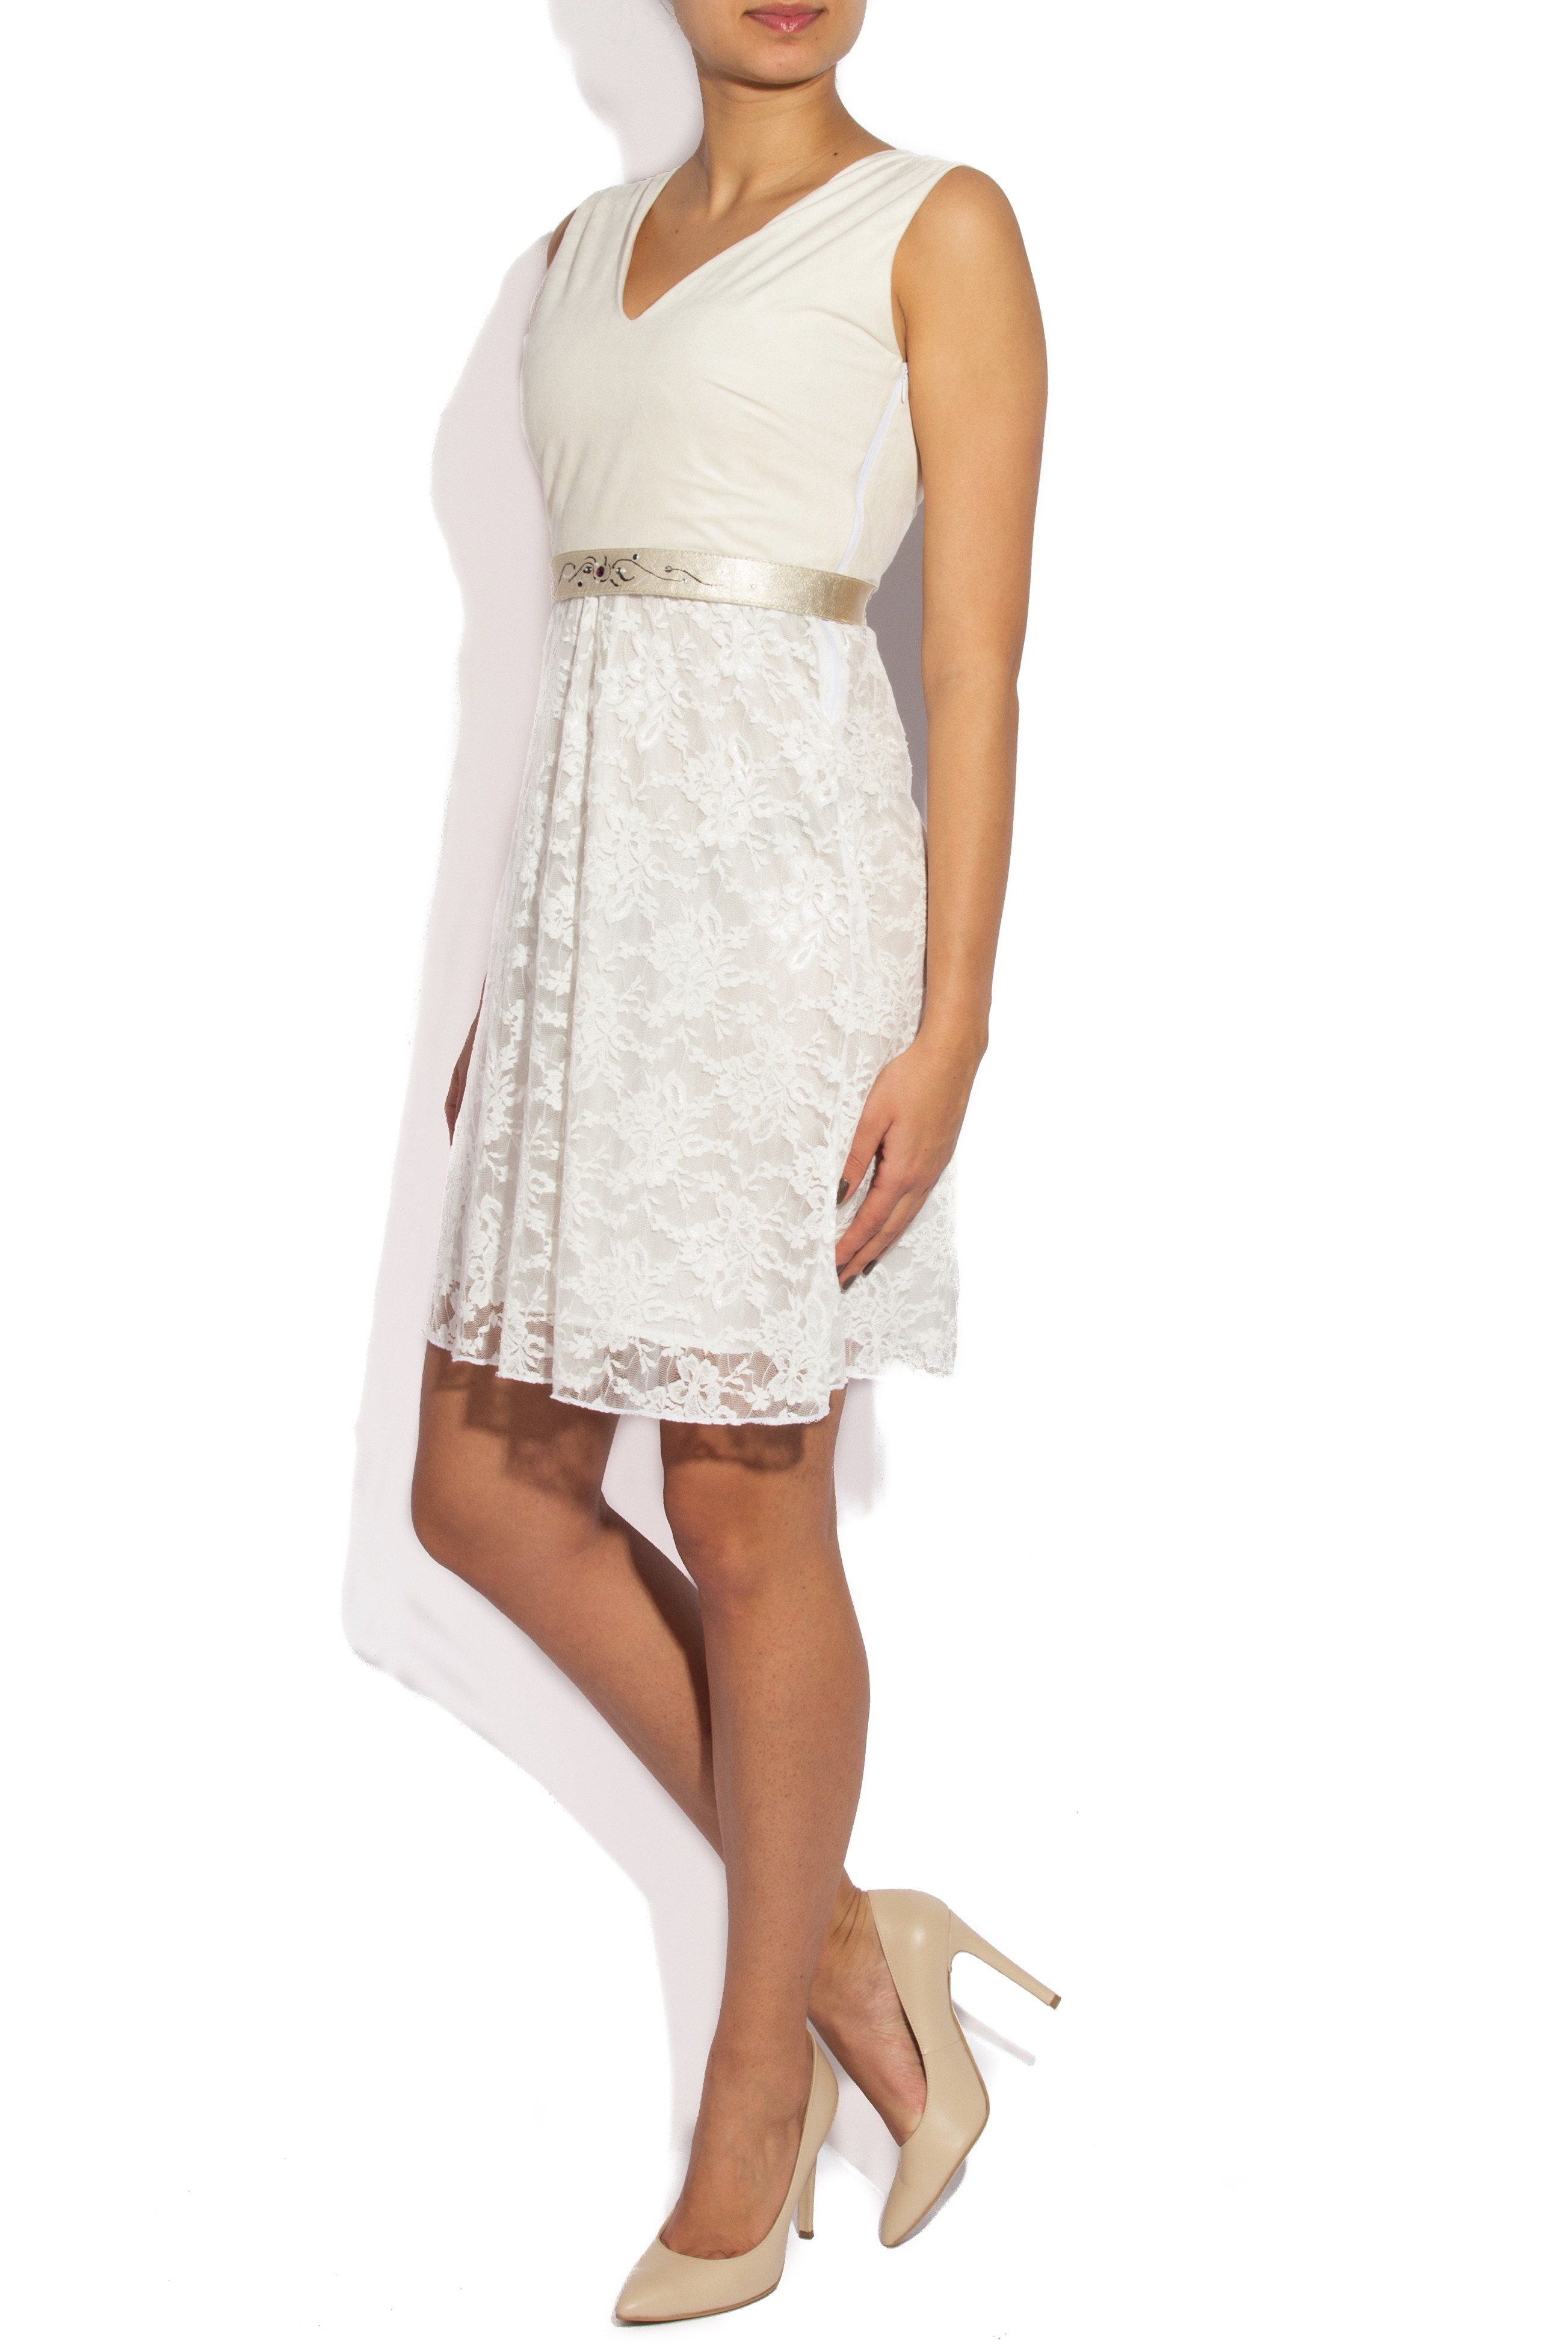 White lace and velvet dress B.A.D. Style by Adriana Barar image 1